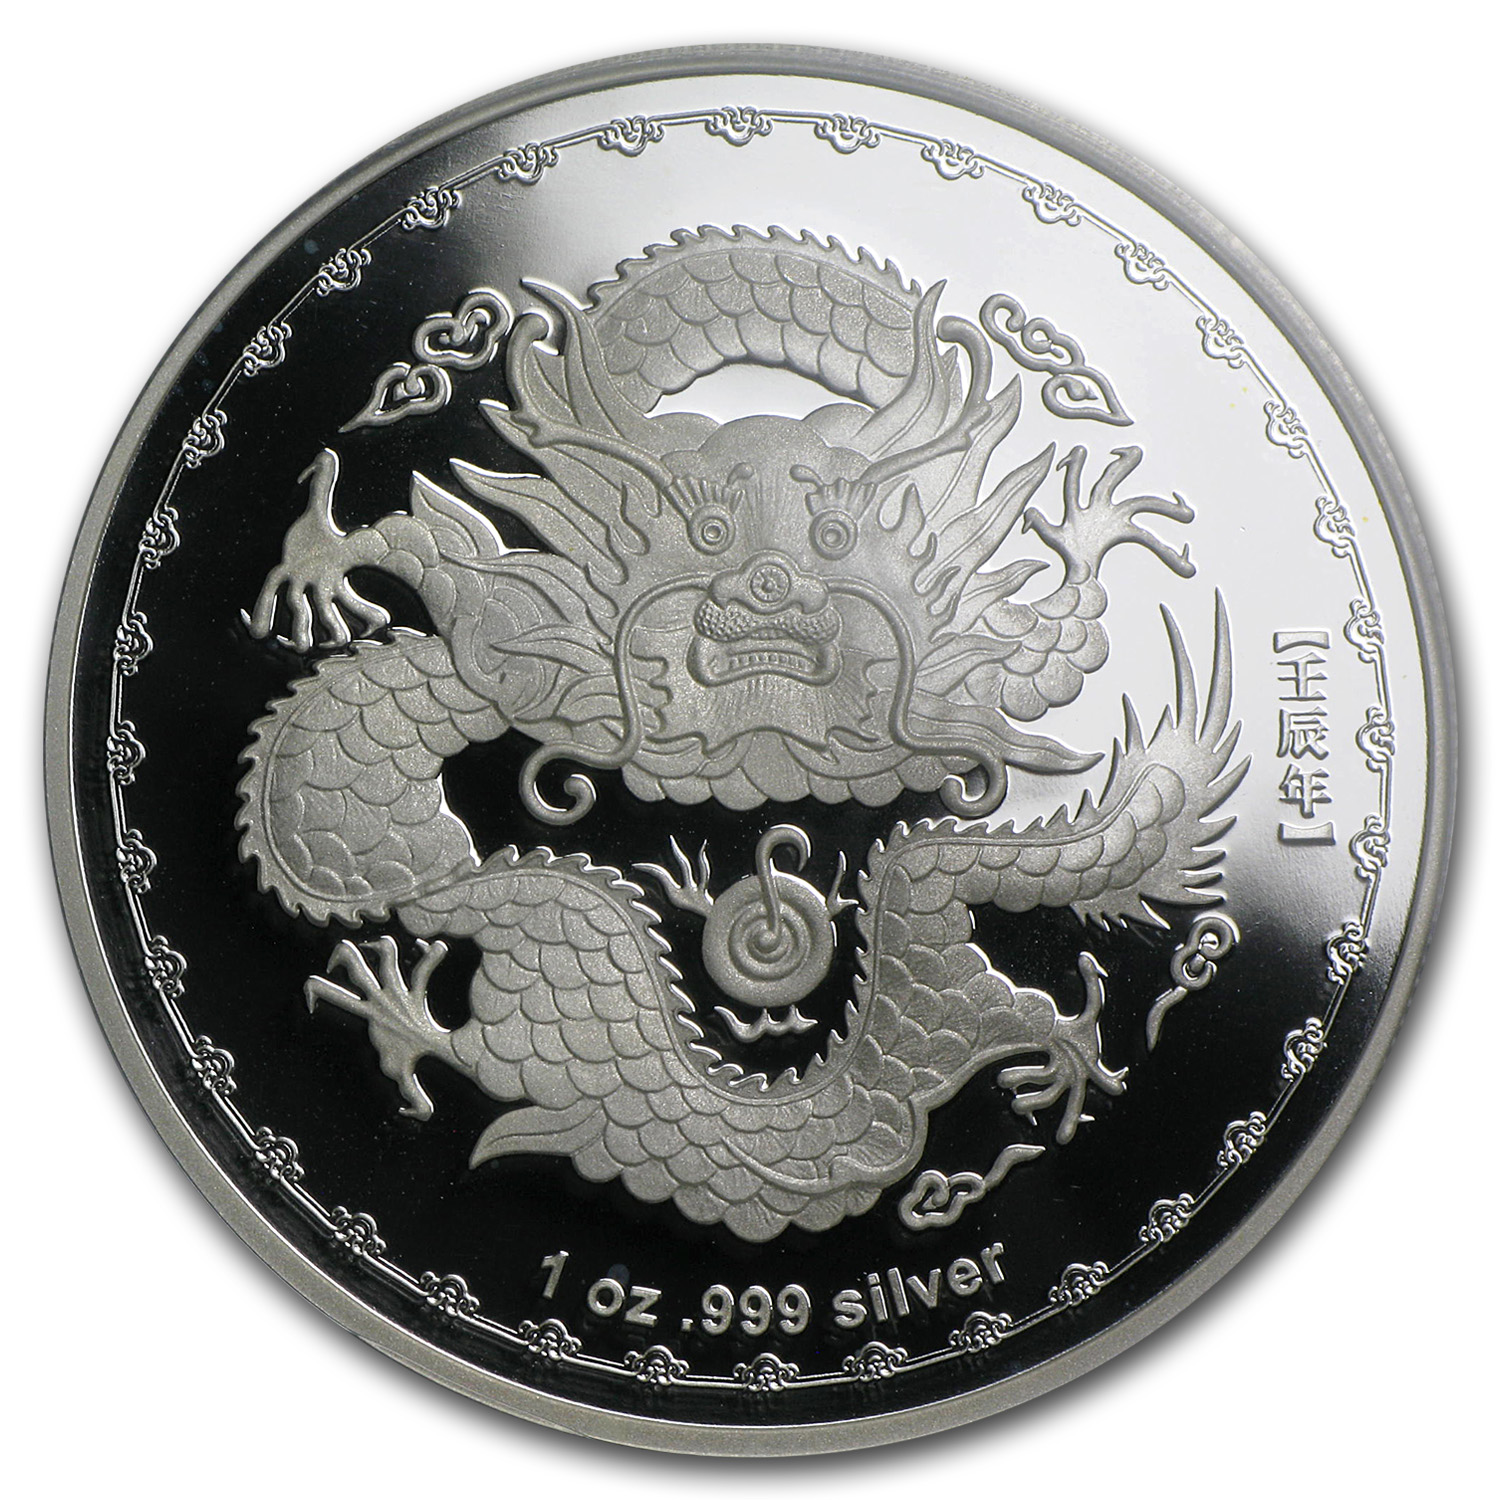 2012 Australia 1 oz Silver Year of the Dragon PR-69 PCGS